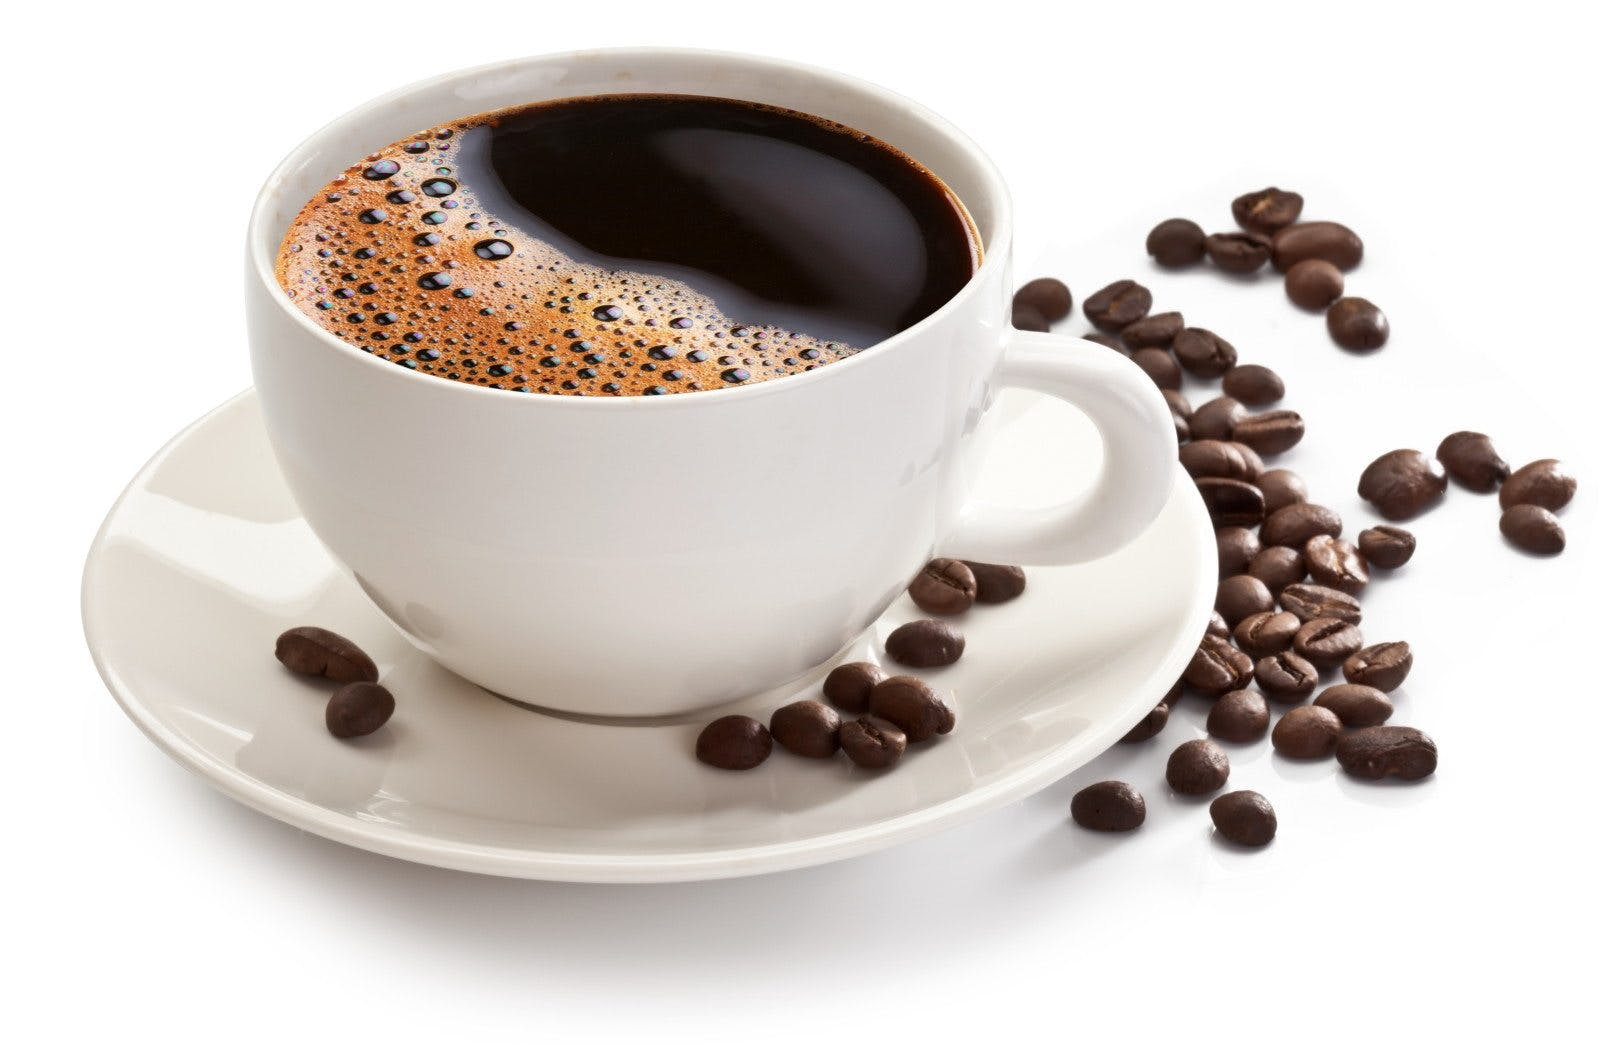 People Addicted To Coffee Detect Smell Of Coffee Faster